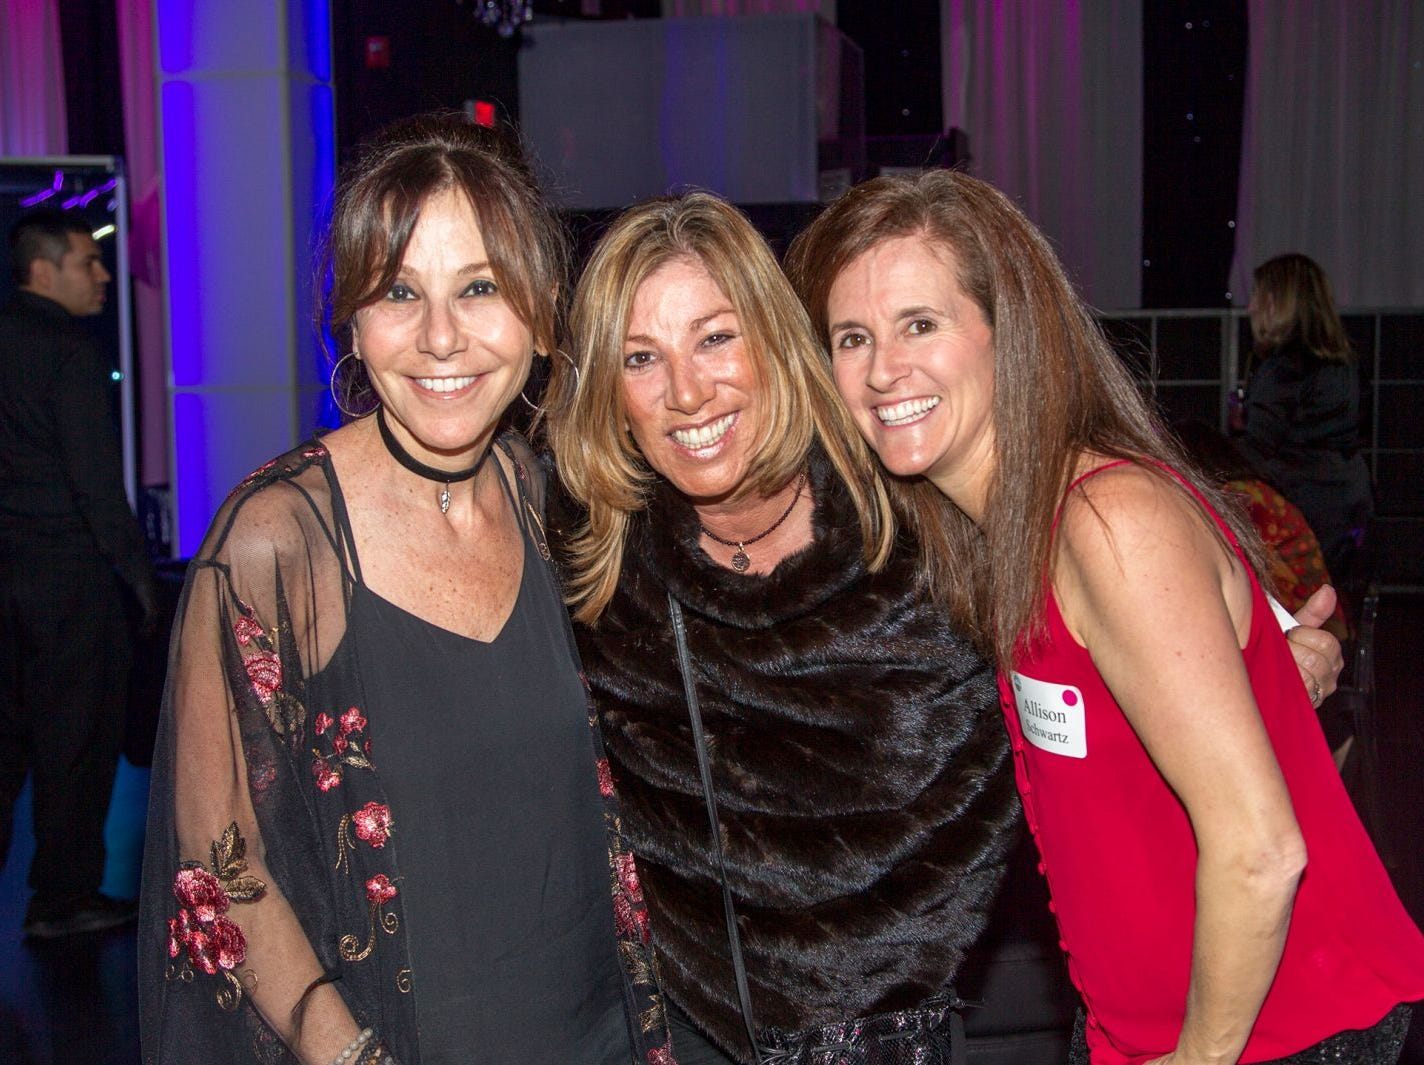 Stacey Beck, Shelley Infeld, Allison Schwartz. Jewish Federation of Northern New Jersey held its first Girl's Night Out dance party at Space in Englewood. 01/24/2019